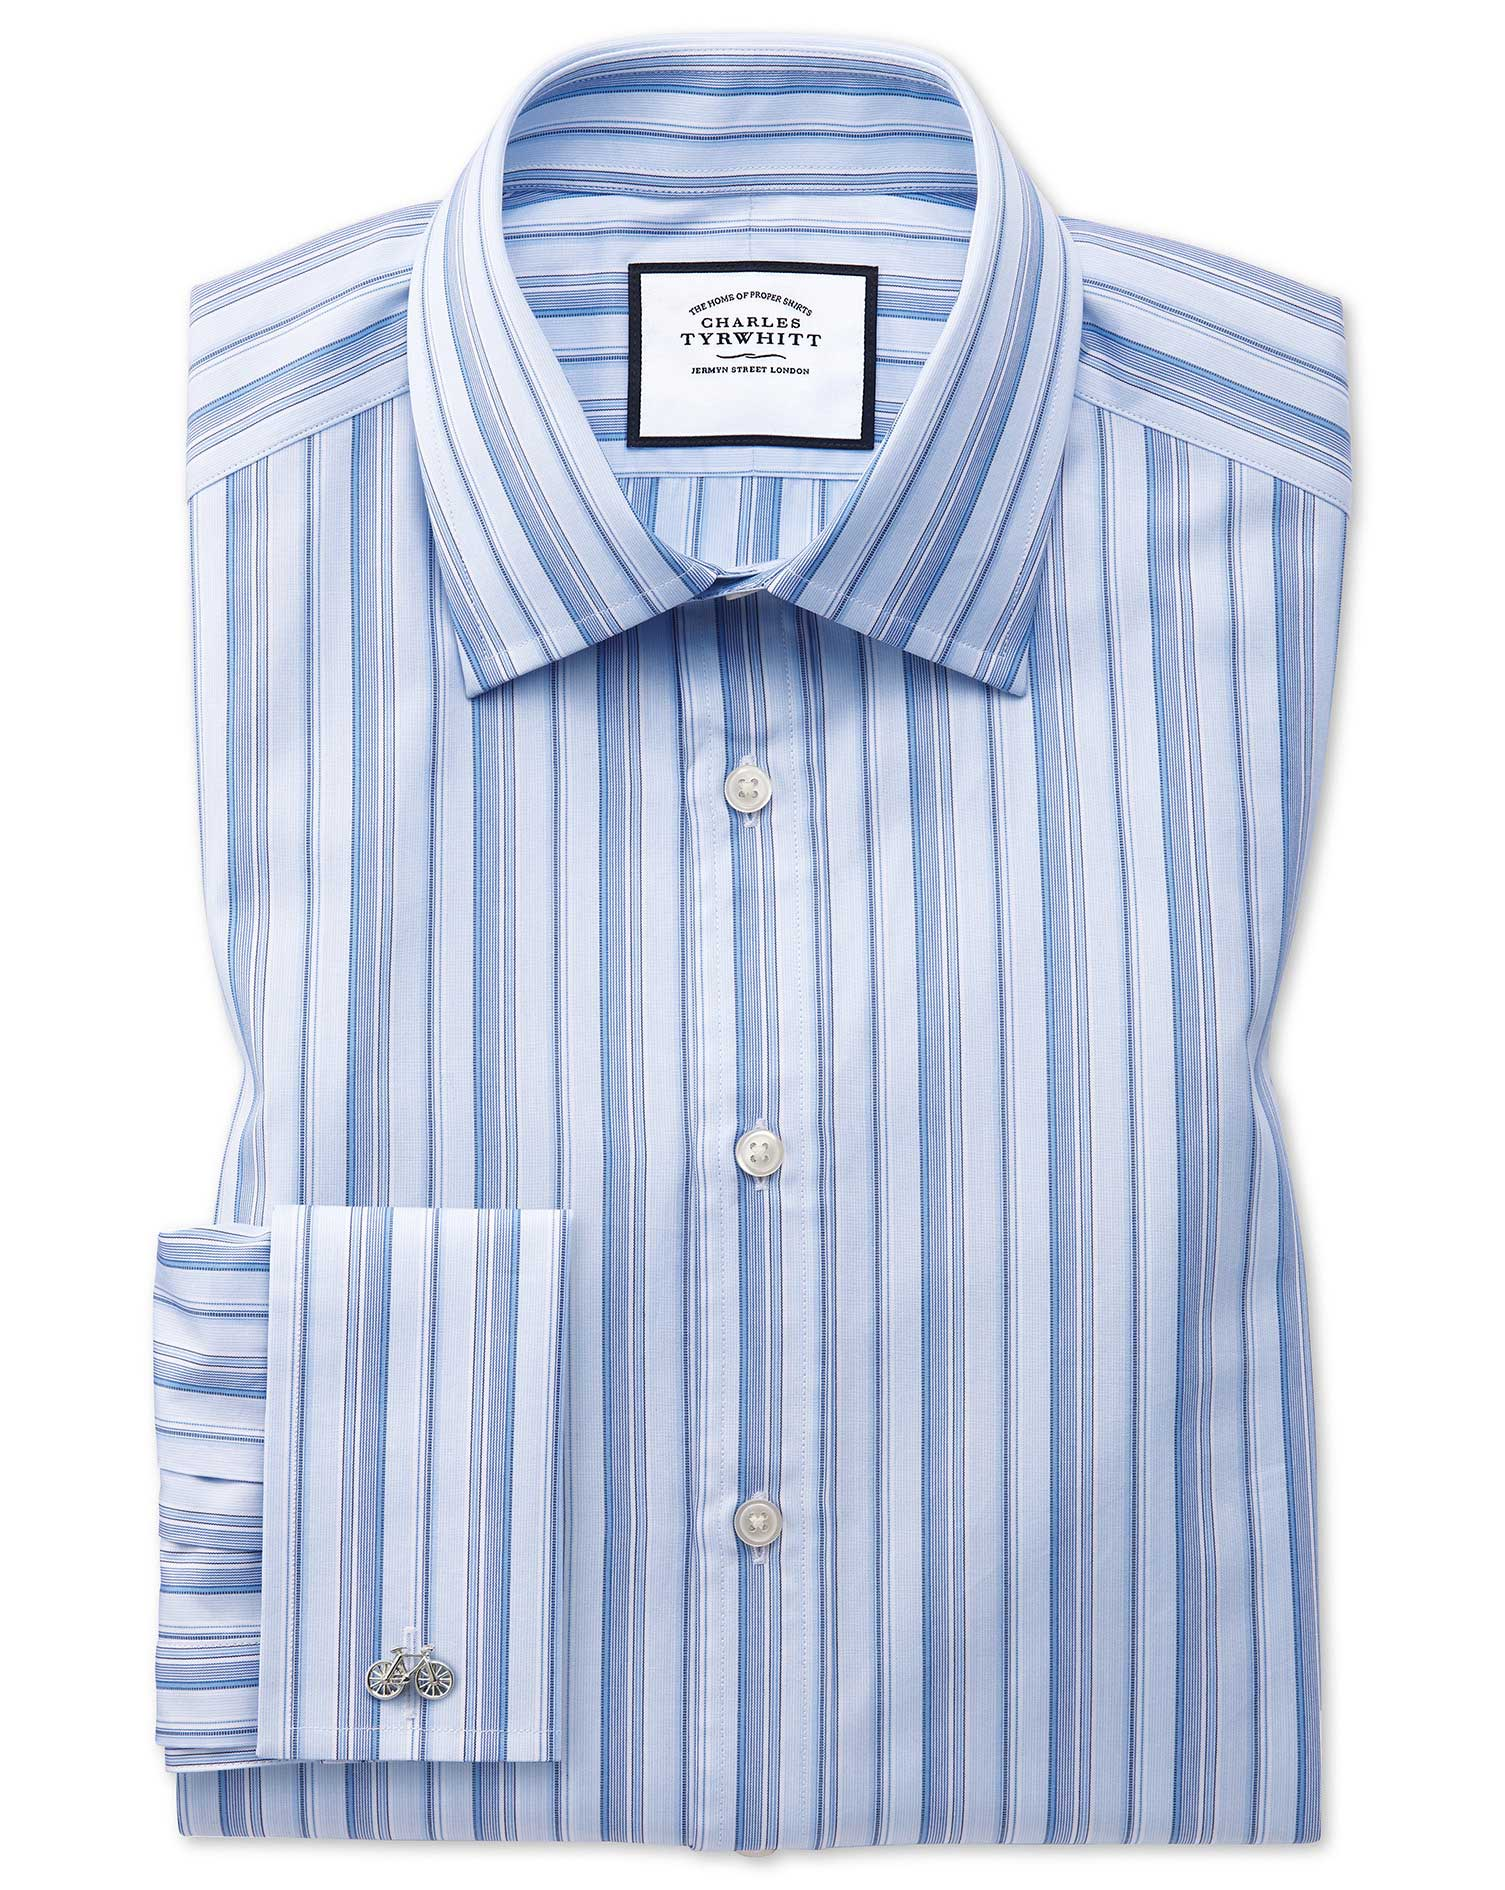 Extra Slim Fit Sky Blue Multi Stripe Egyptian Cotton Formal Shirt Single Cuff Size 14.5/33 by Charle